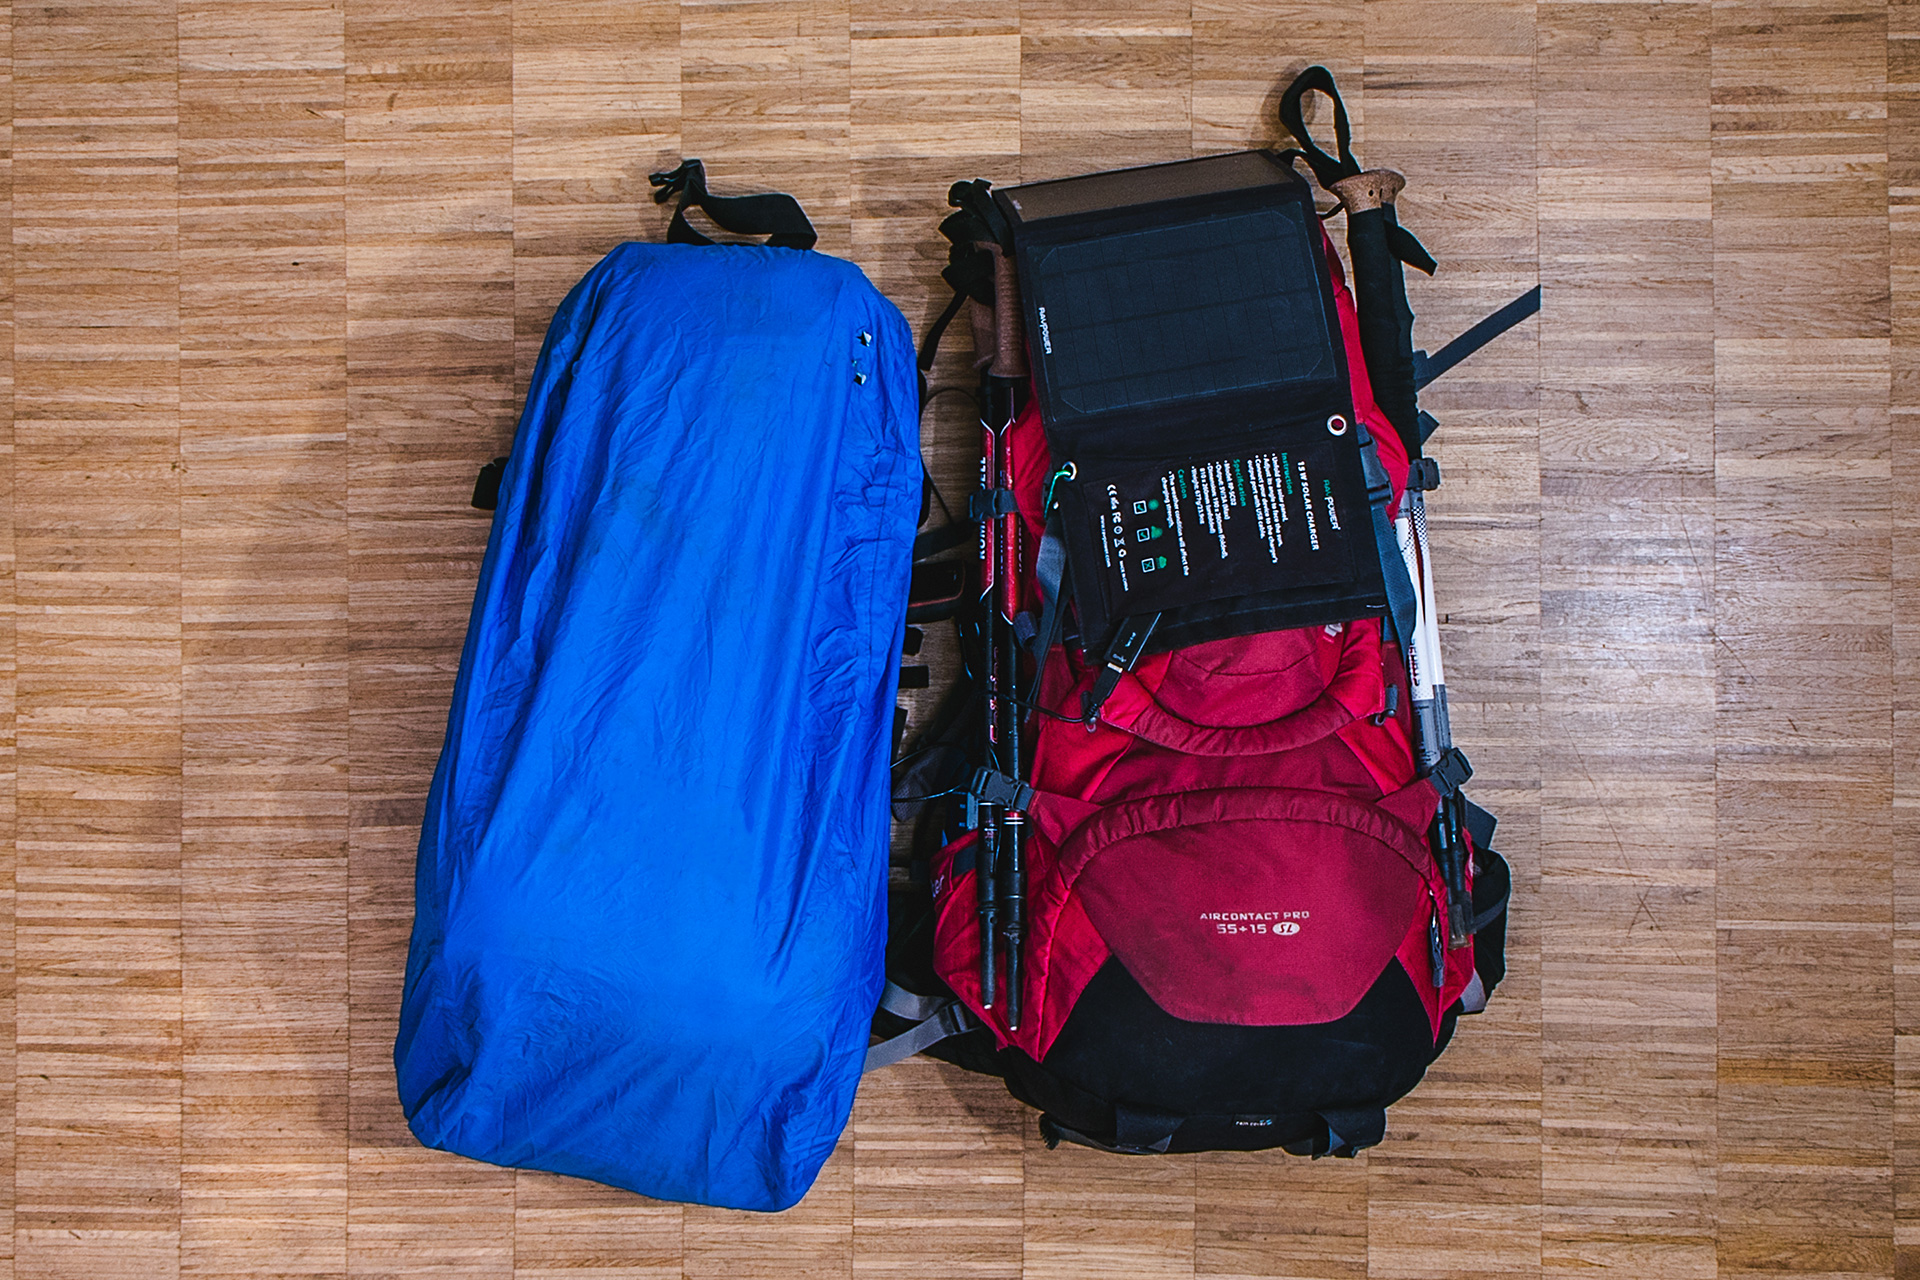 Our backpacks for the Everest Base Camp Trek